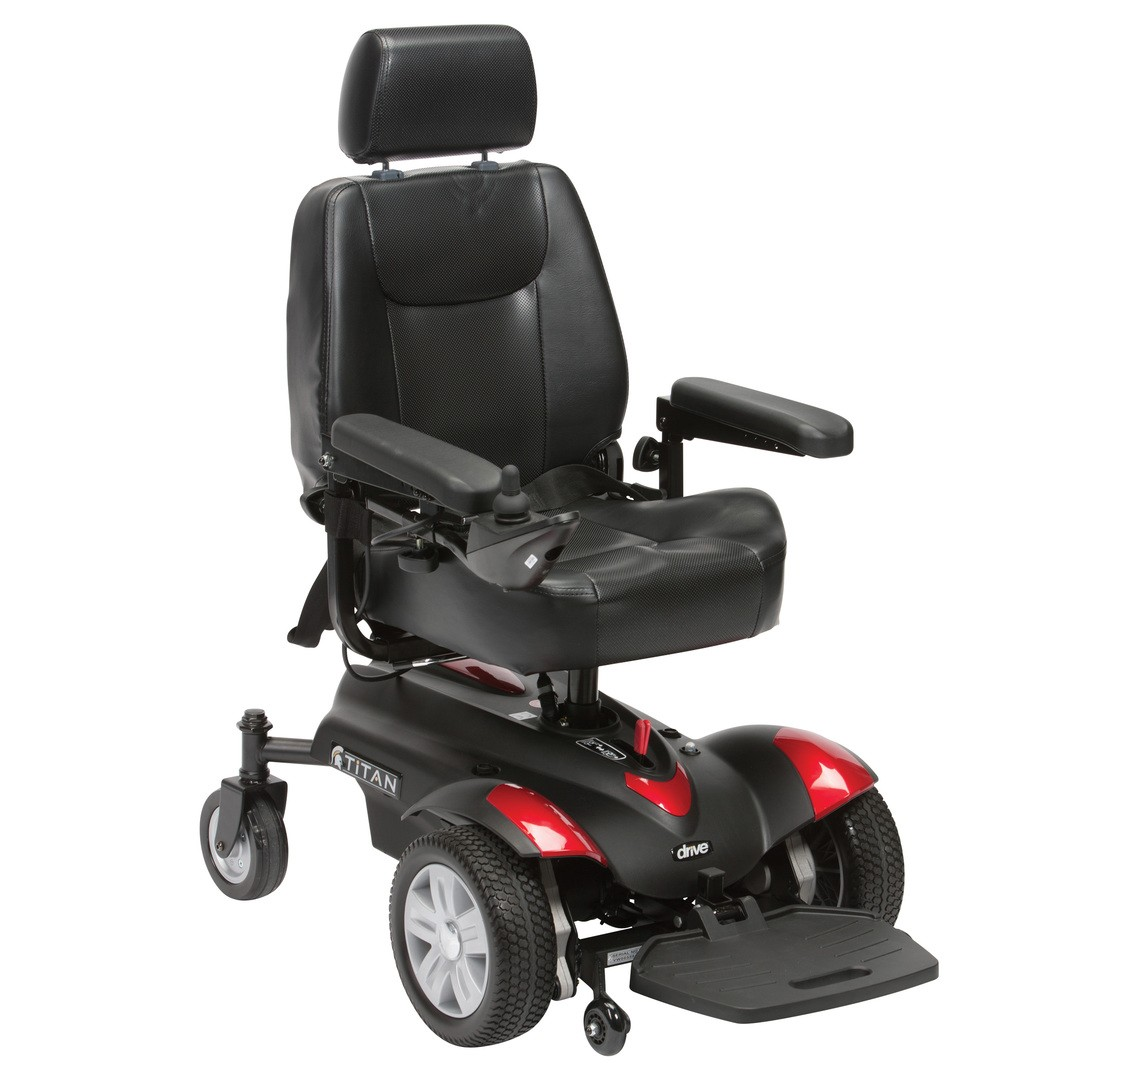 Titan powerchair electric wheelchair at low prices UK ...